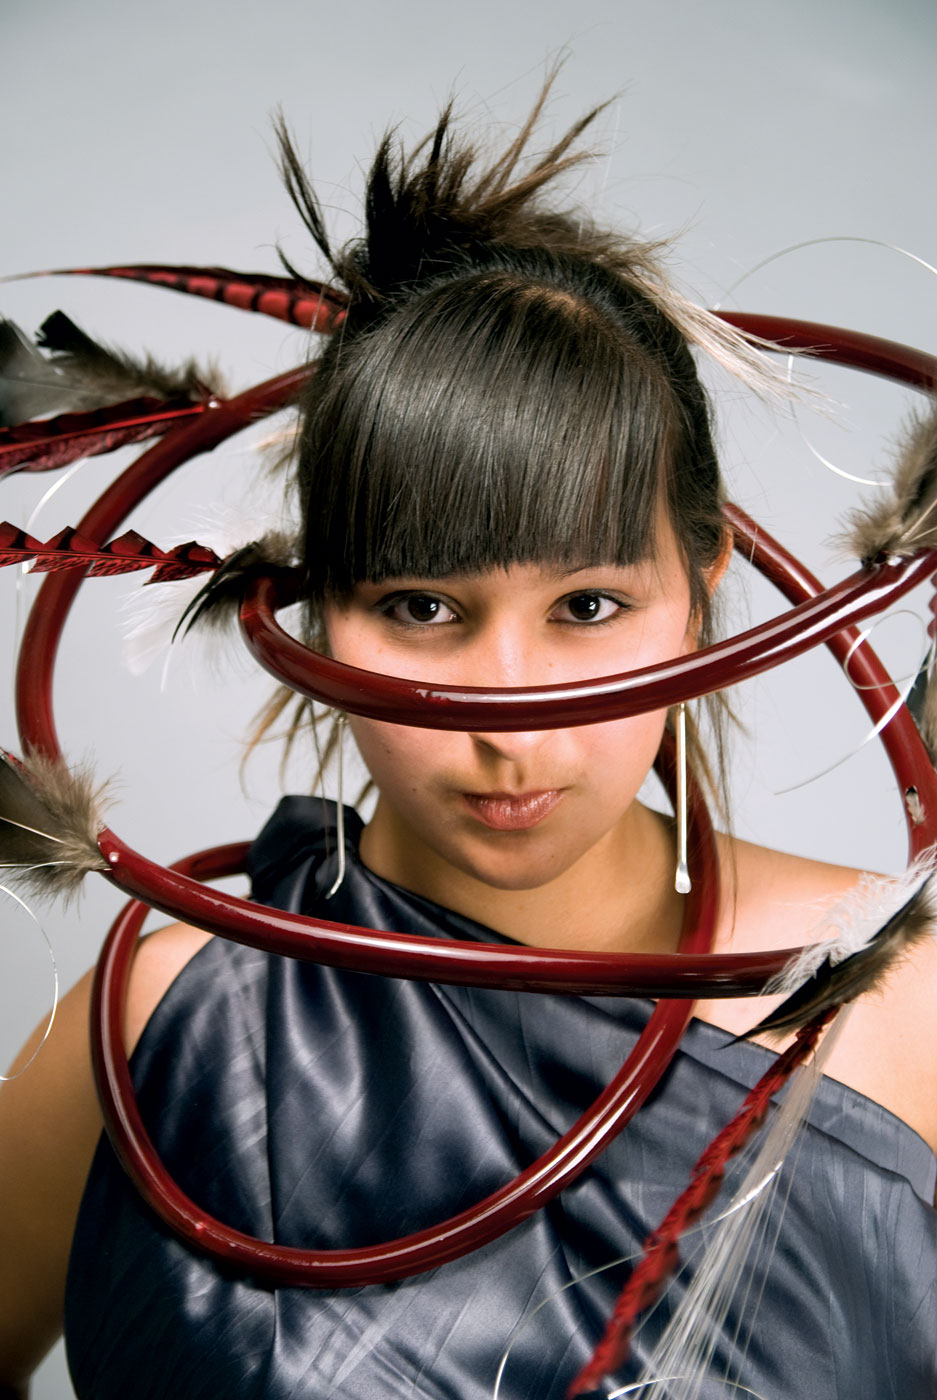 POSTMODERN BOA of stainless steel, sterling silver, enamel paint, and feathers, by David and Wayne Nez Gaussoin (Picuris Pueblo/Diné), 2009.  Model: Tazbah Gaussoin. Photograph by David Gaussoin; courtesy of Museum of Indian Arts and Culture.